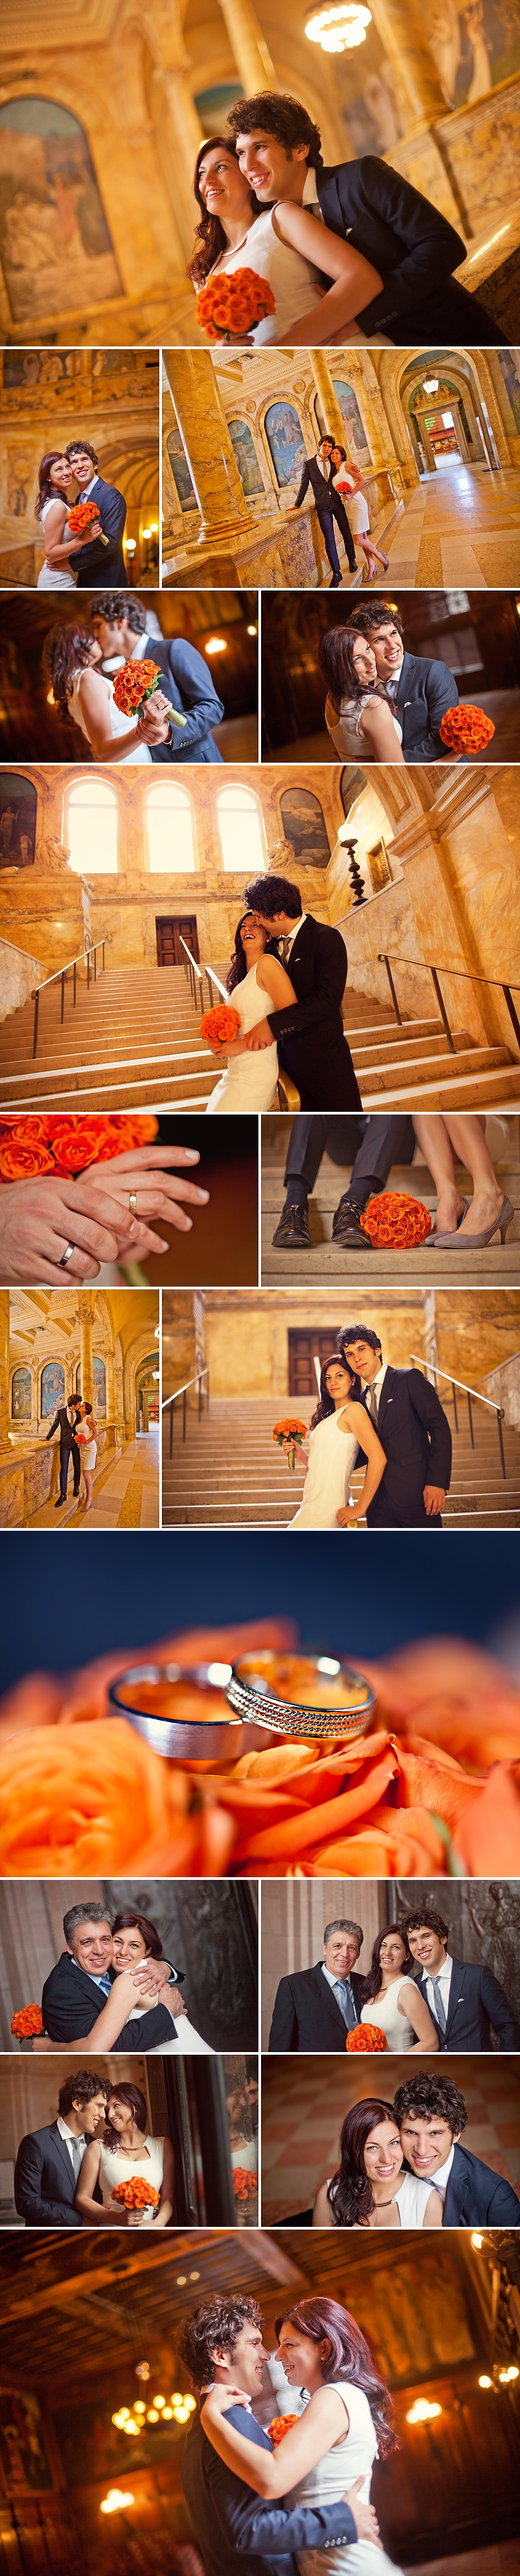 Vasily and Katya's post-wedding photos in the Boston Public Library following their wedding at Boston City Hall.